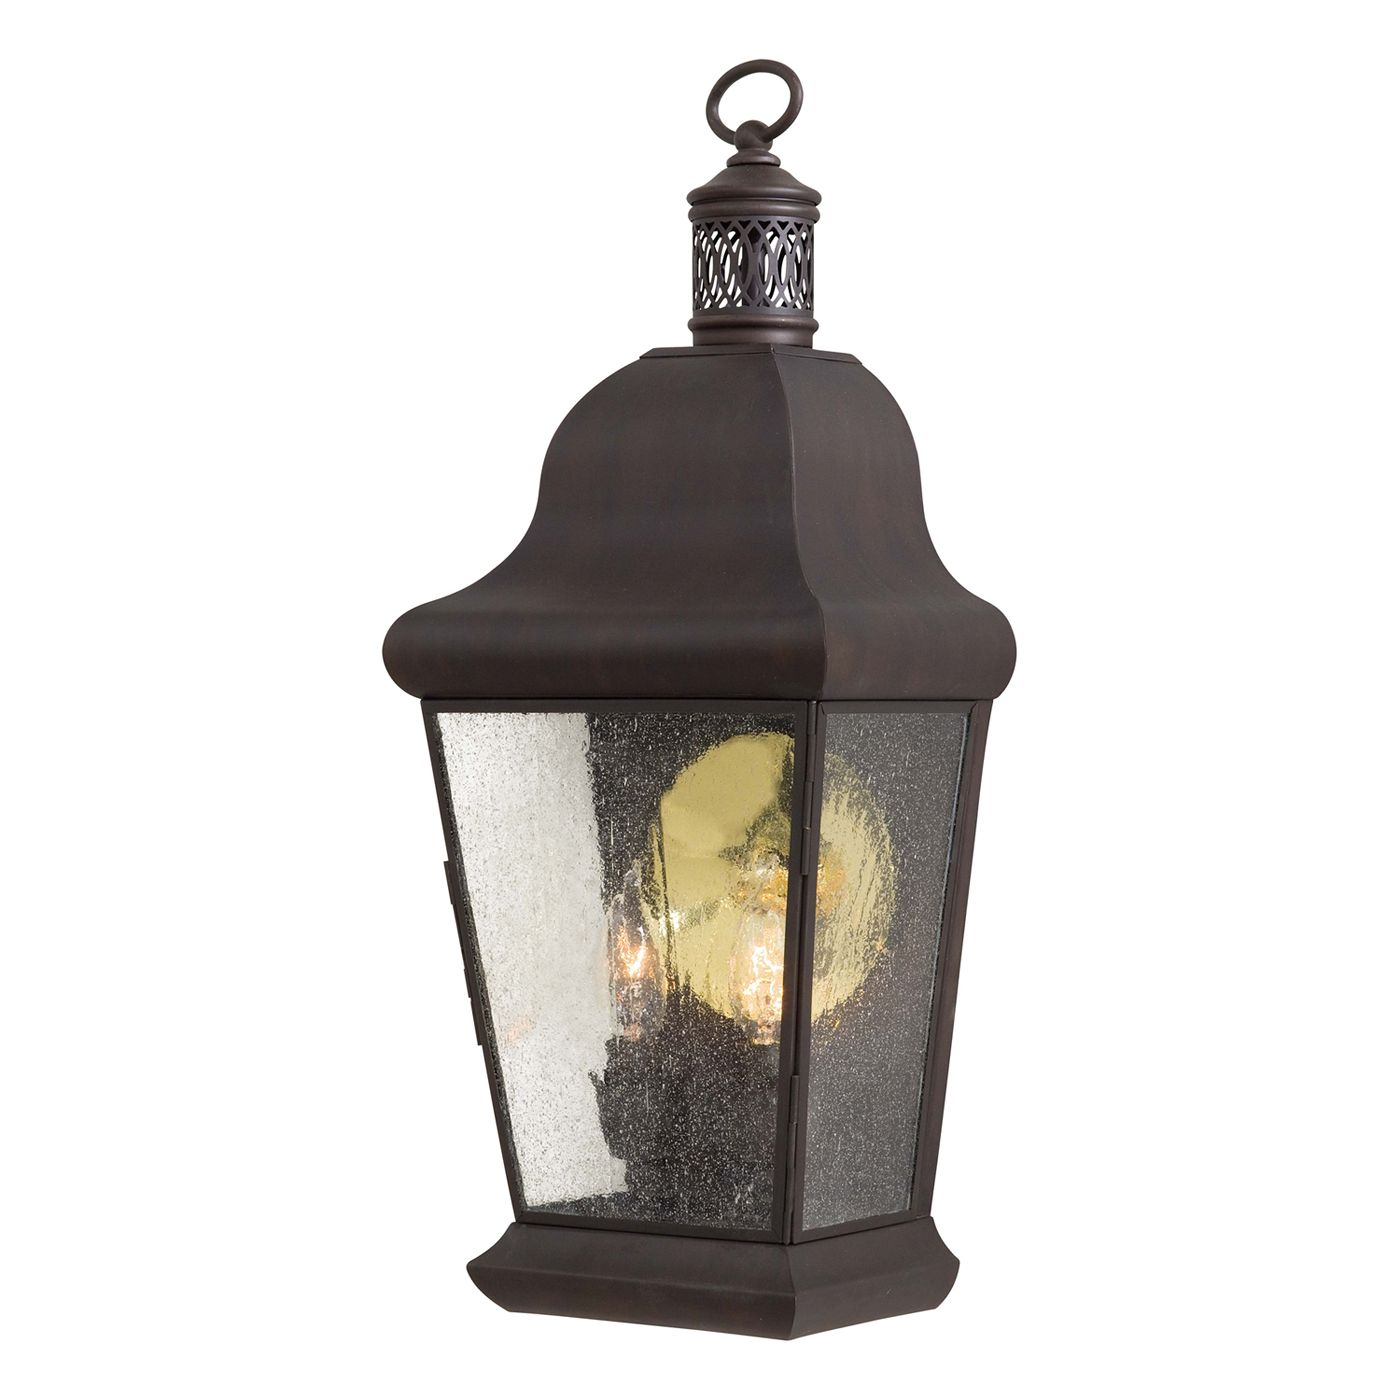 The great outdoors by minka lavery 8558 57 glen allen 2 light pocket the great outdoors by minka lavery 8558 57 glen allen 2 light pocket outdoor sconce mozeypictures Choice Image